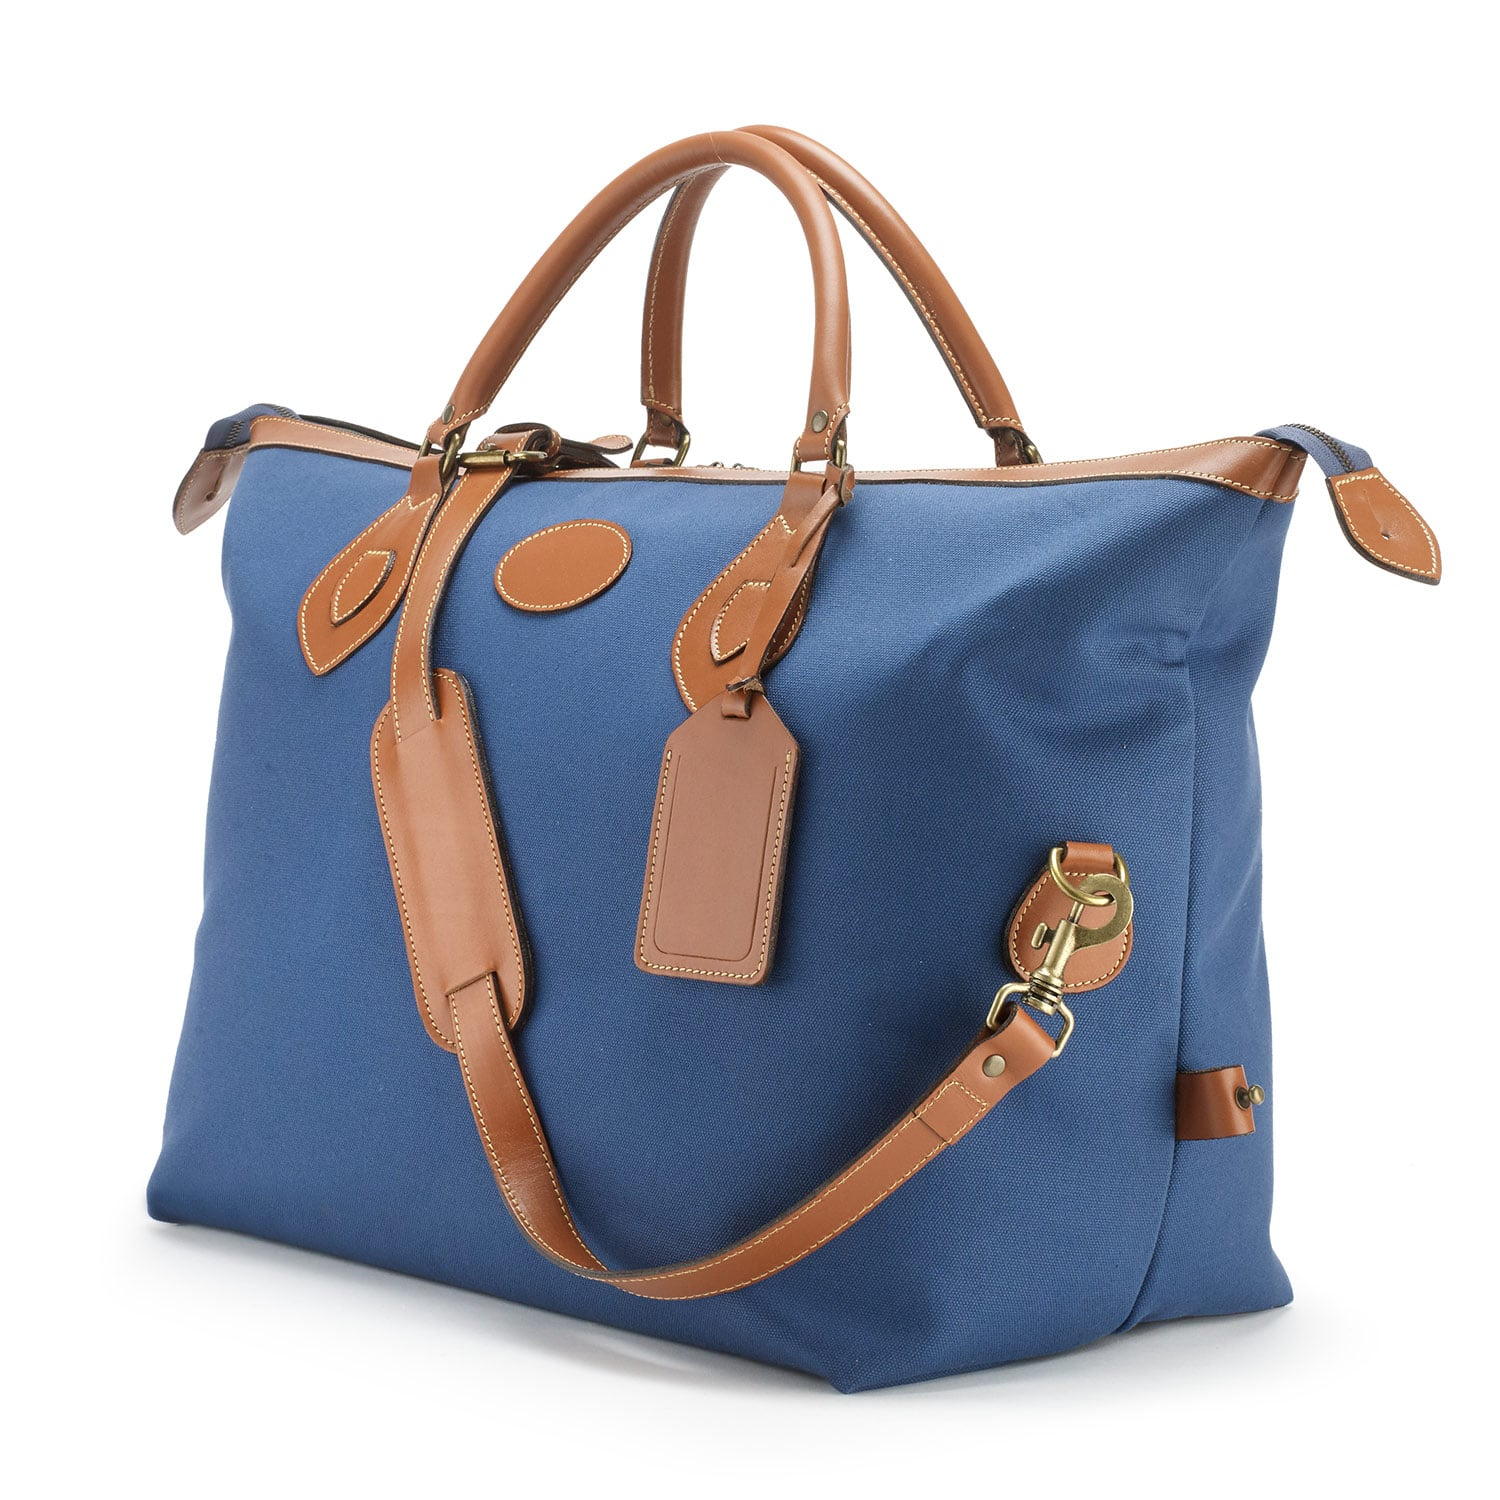 Tusting Explorer Tasche, medium, denim blue 4